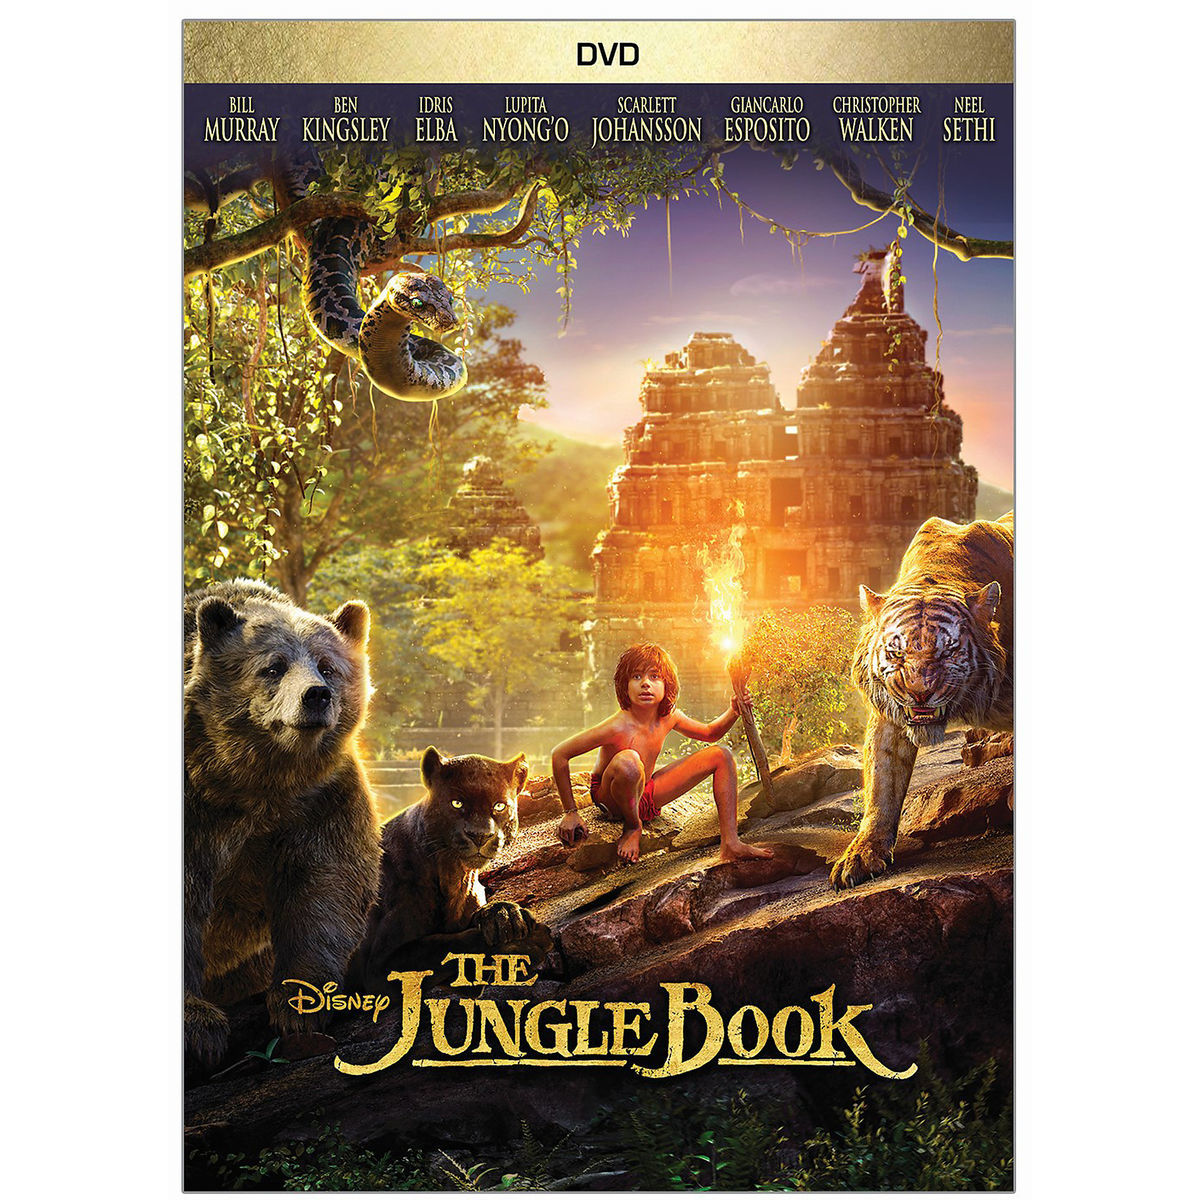 The Jungle Book DVD - Live Action | shopDisney